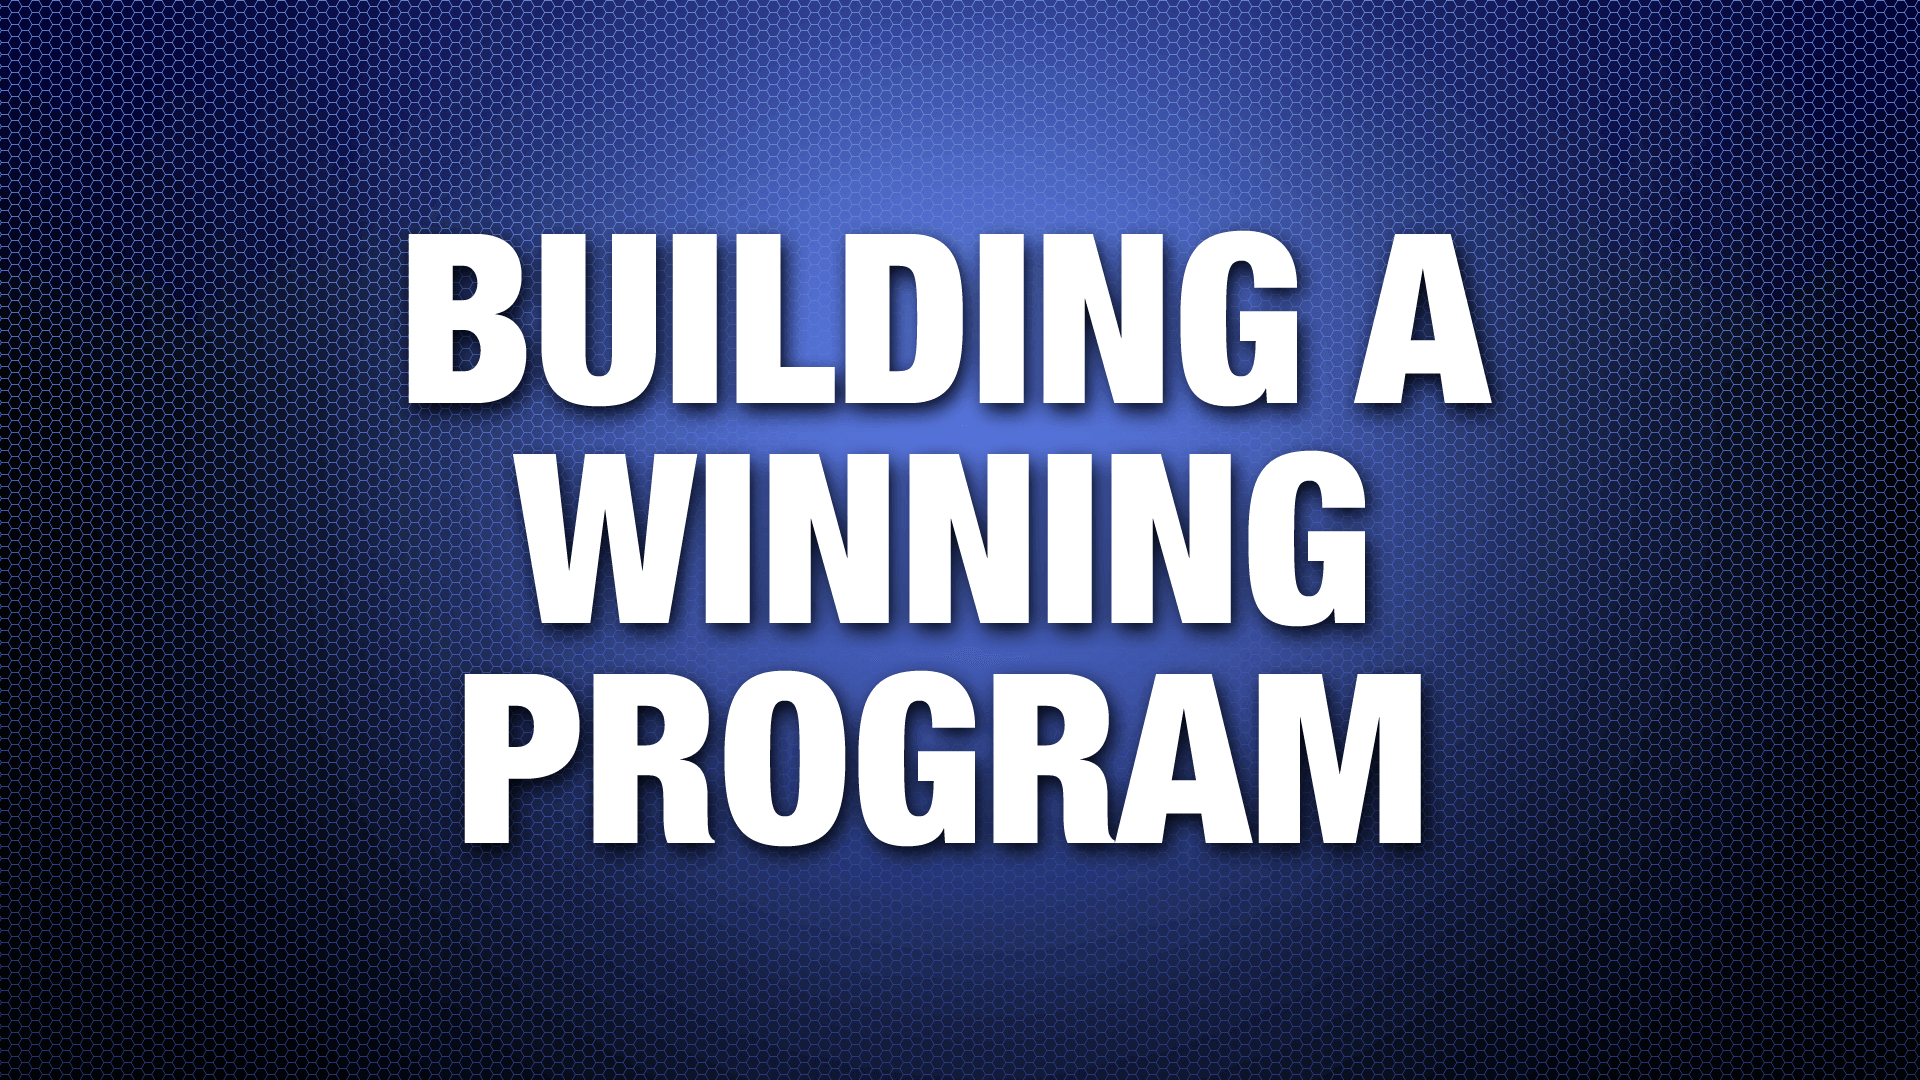 BuildingAWinningProgram